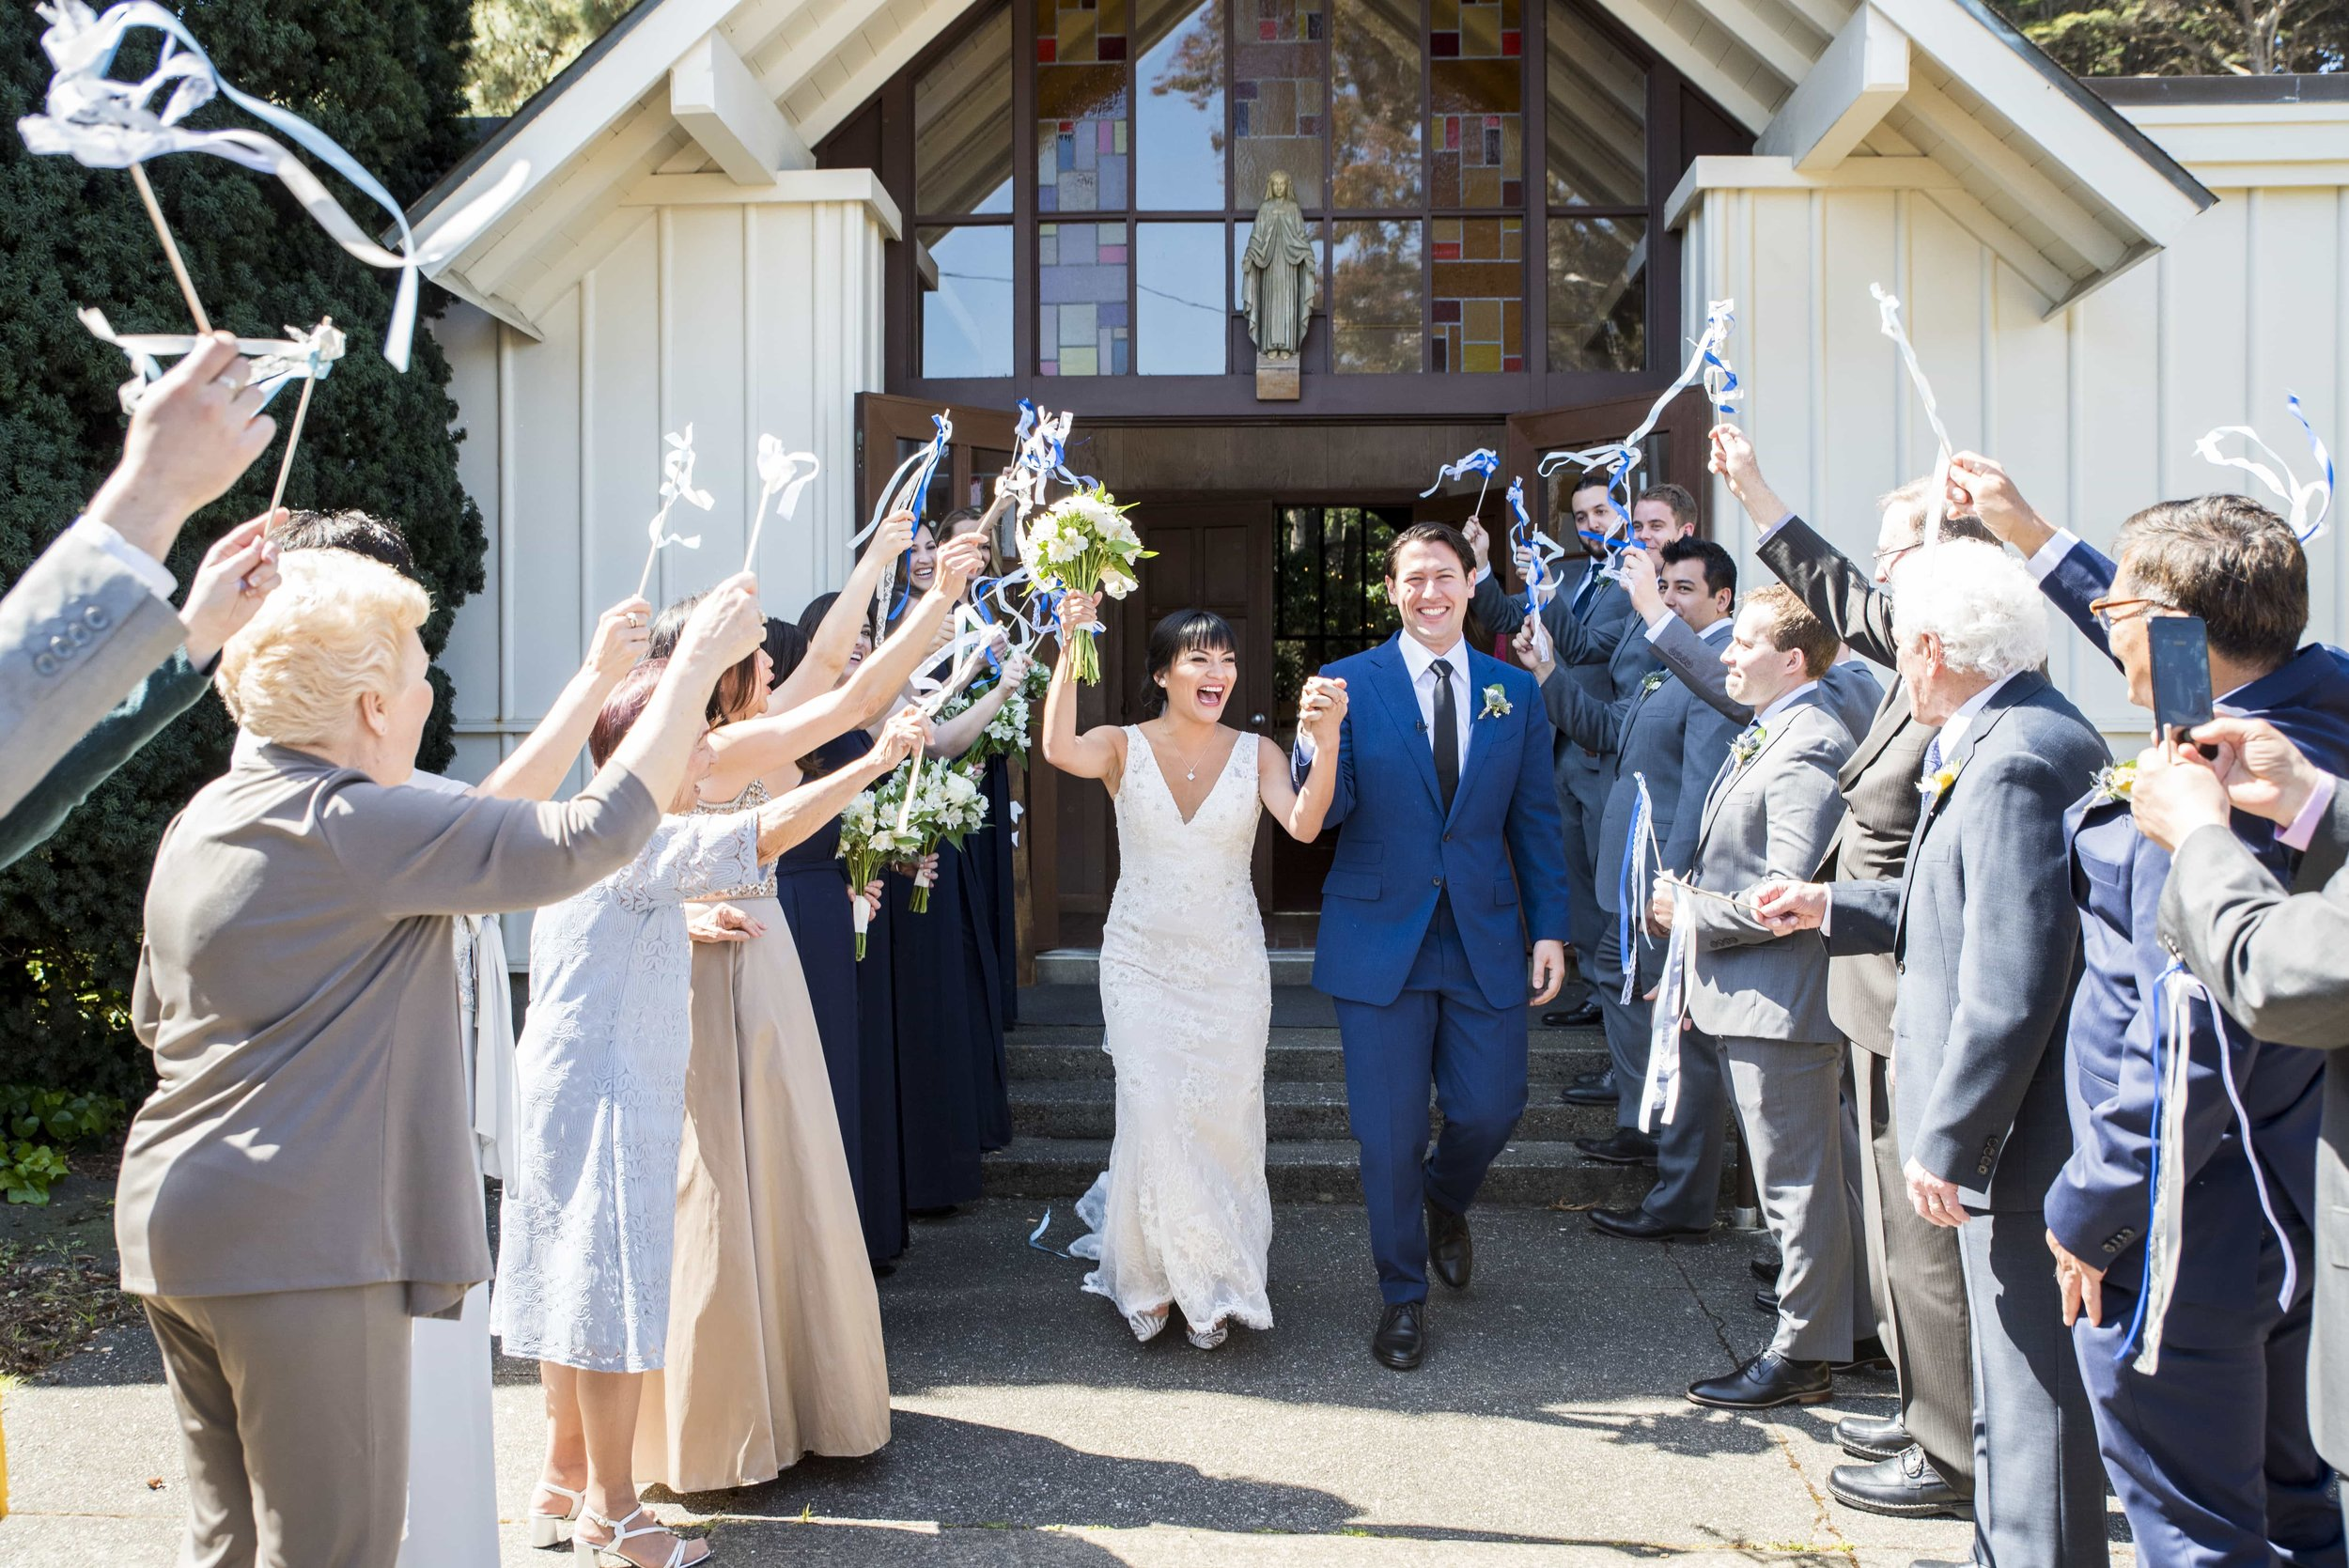 Bride and Groom exiting historic church as guests wave streamers